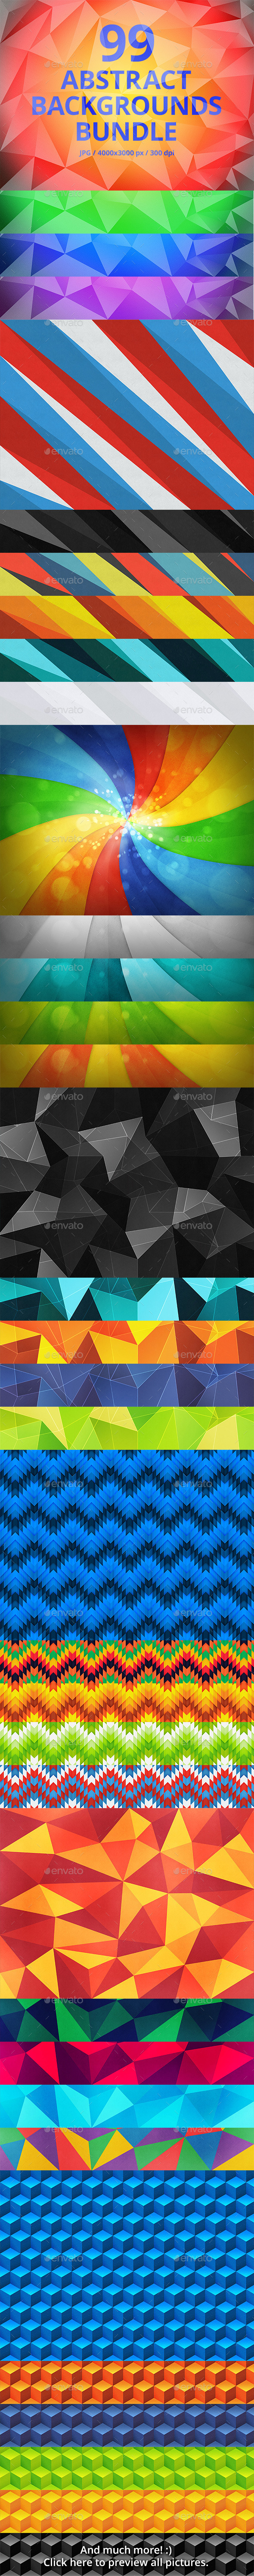 GraphicRiver 99 Abstract Backgrounds Bundle 9848301